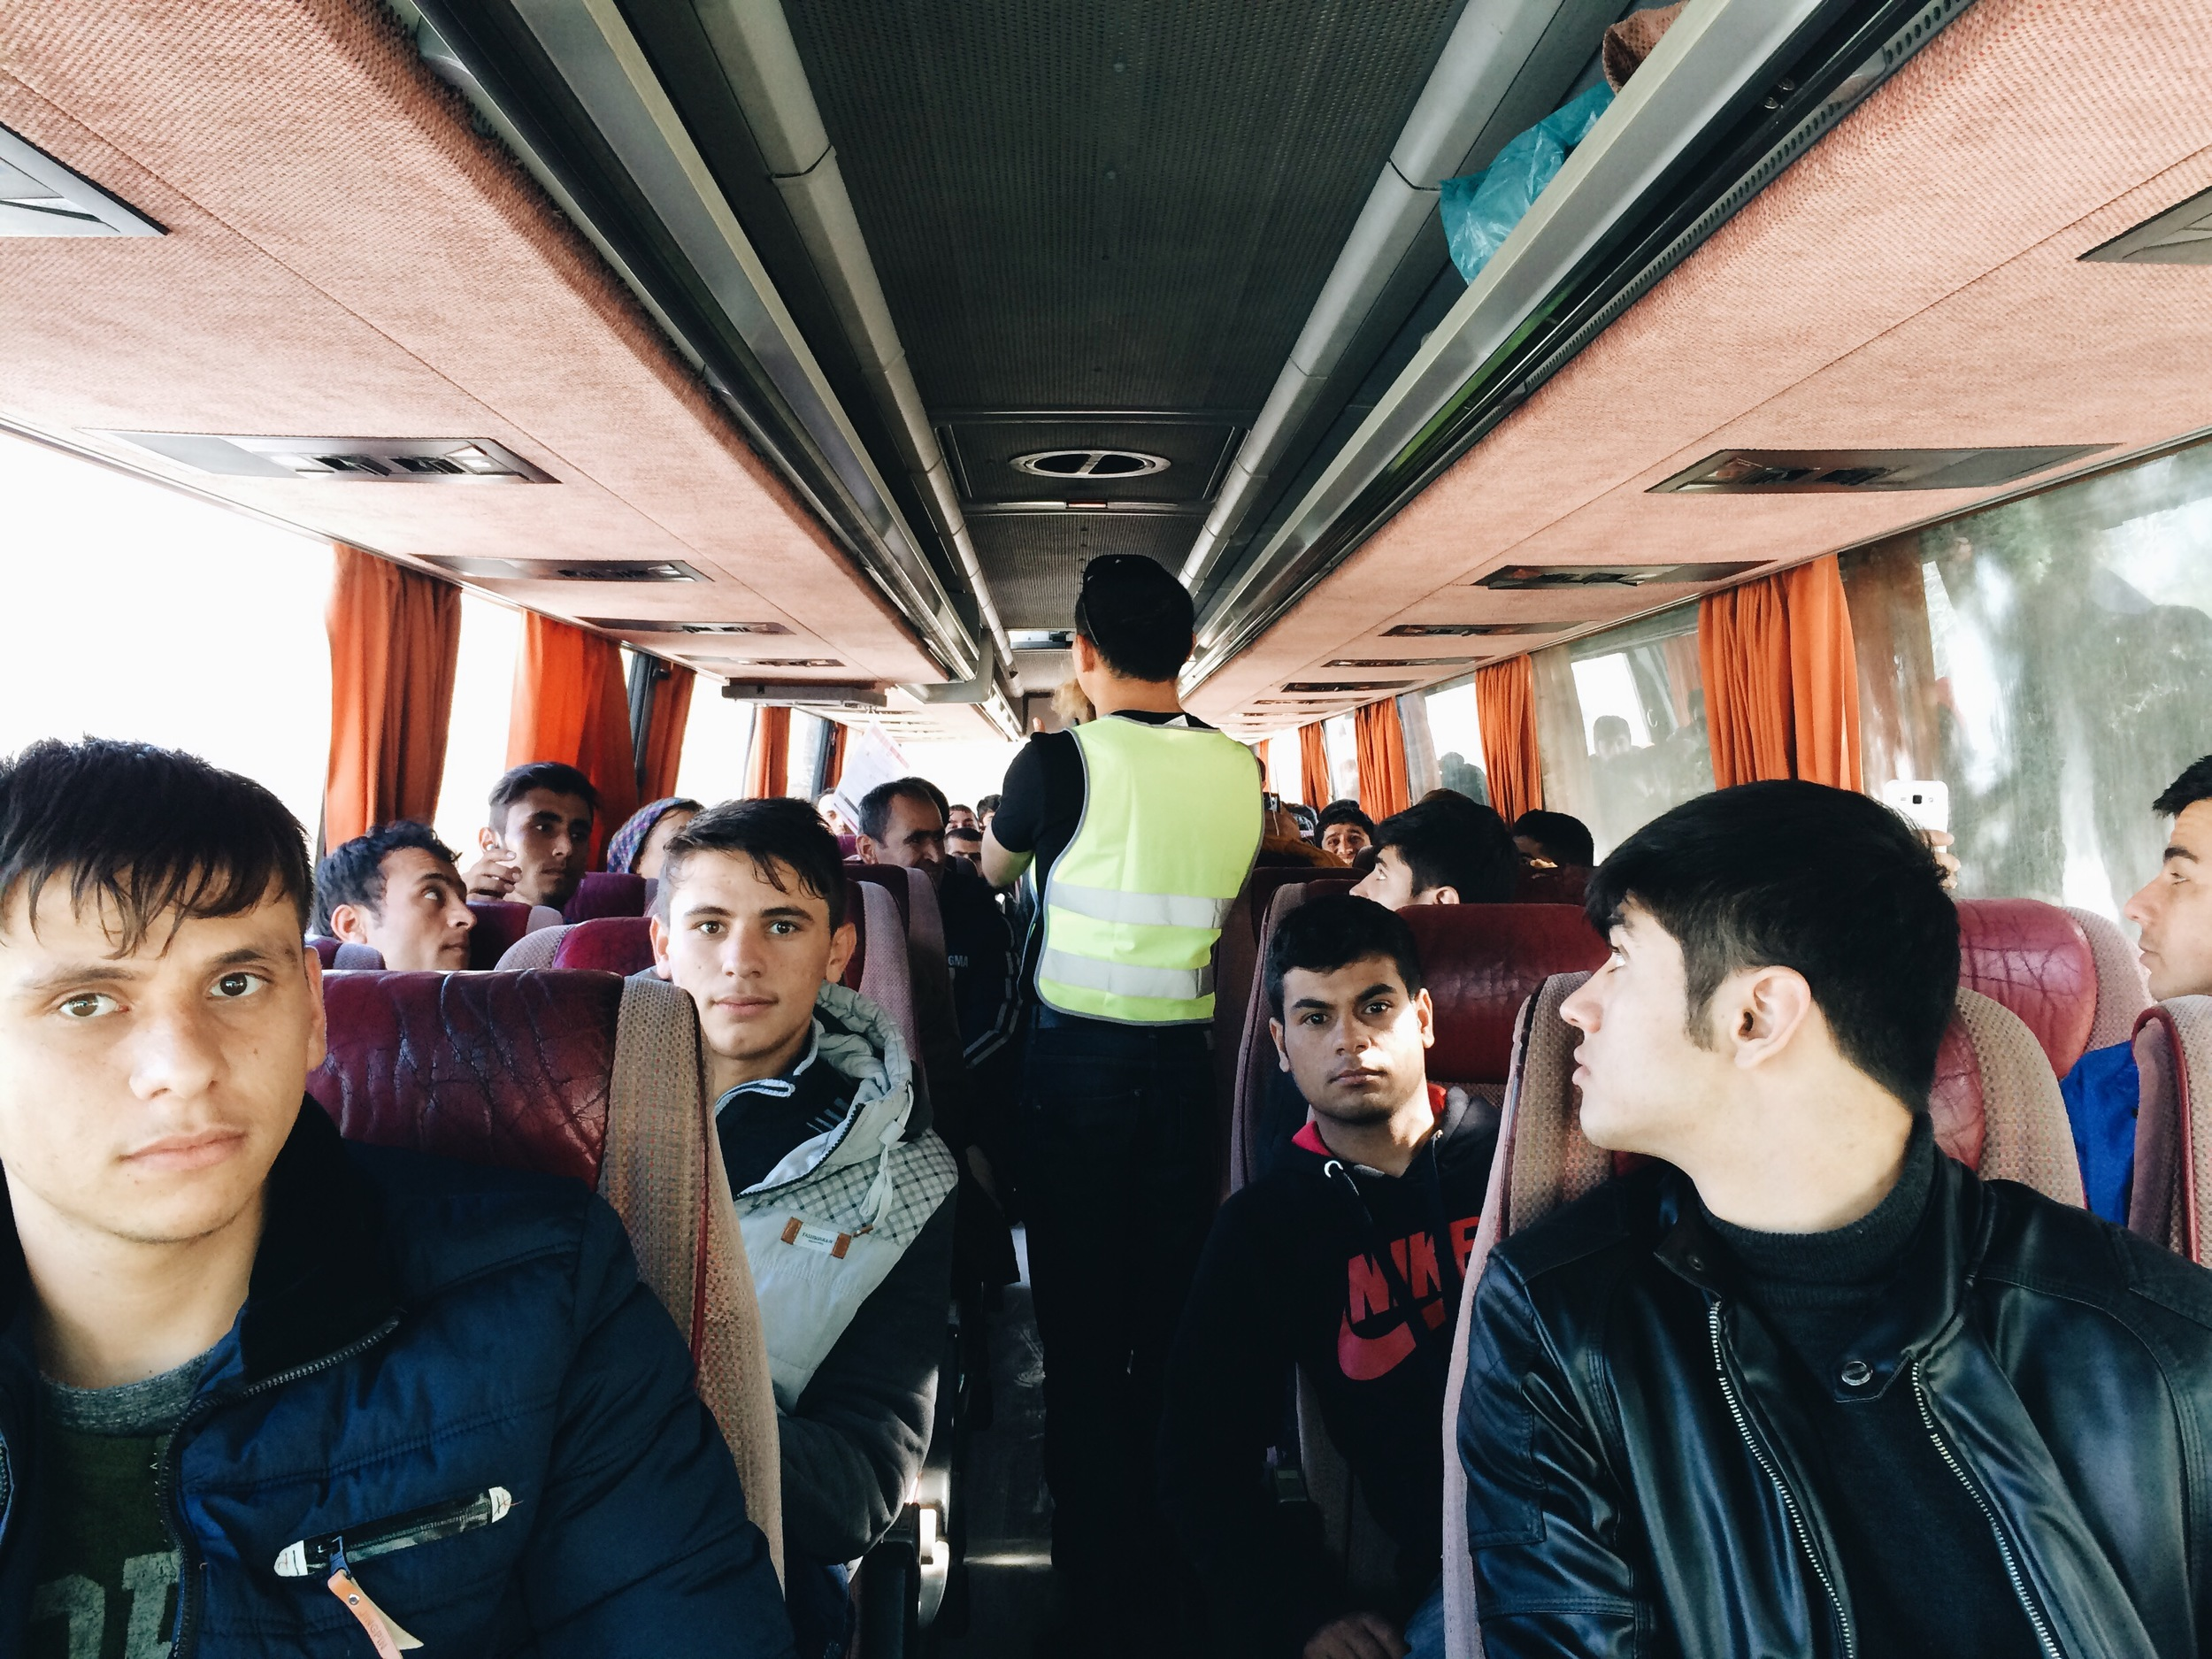 Receiving instructions on the bus to Moria Camp